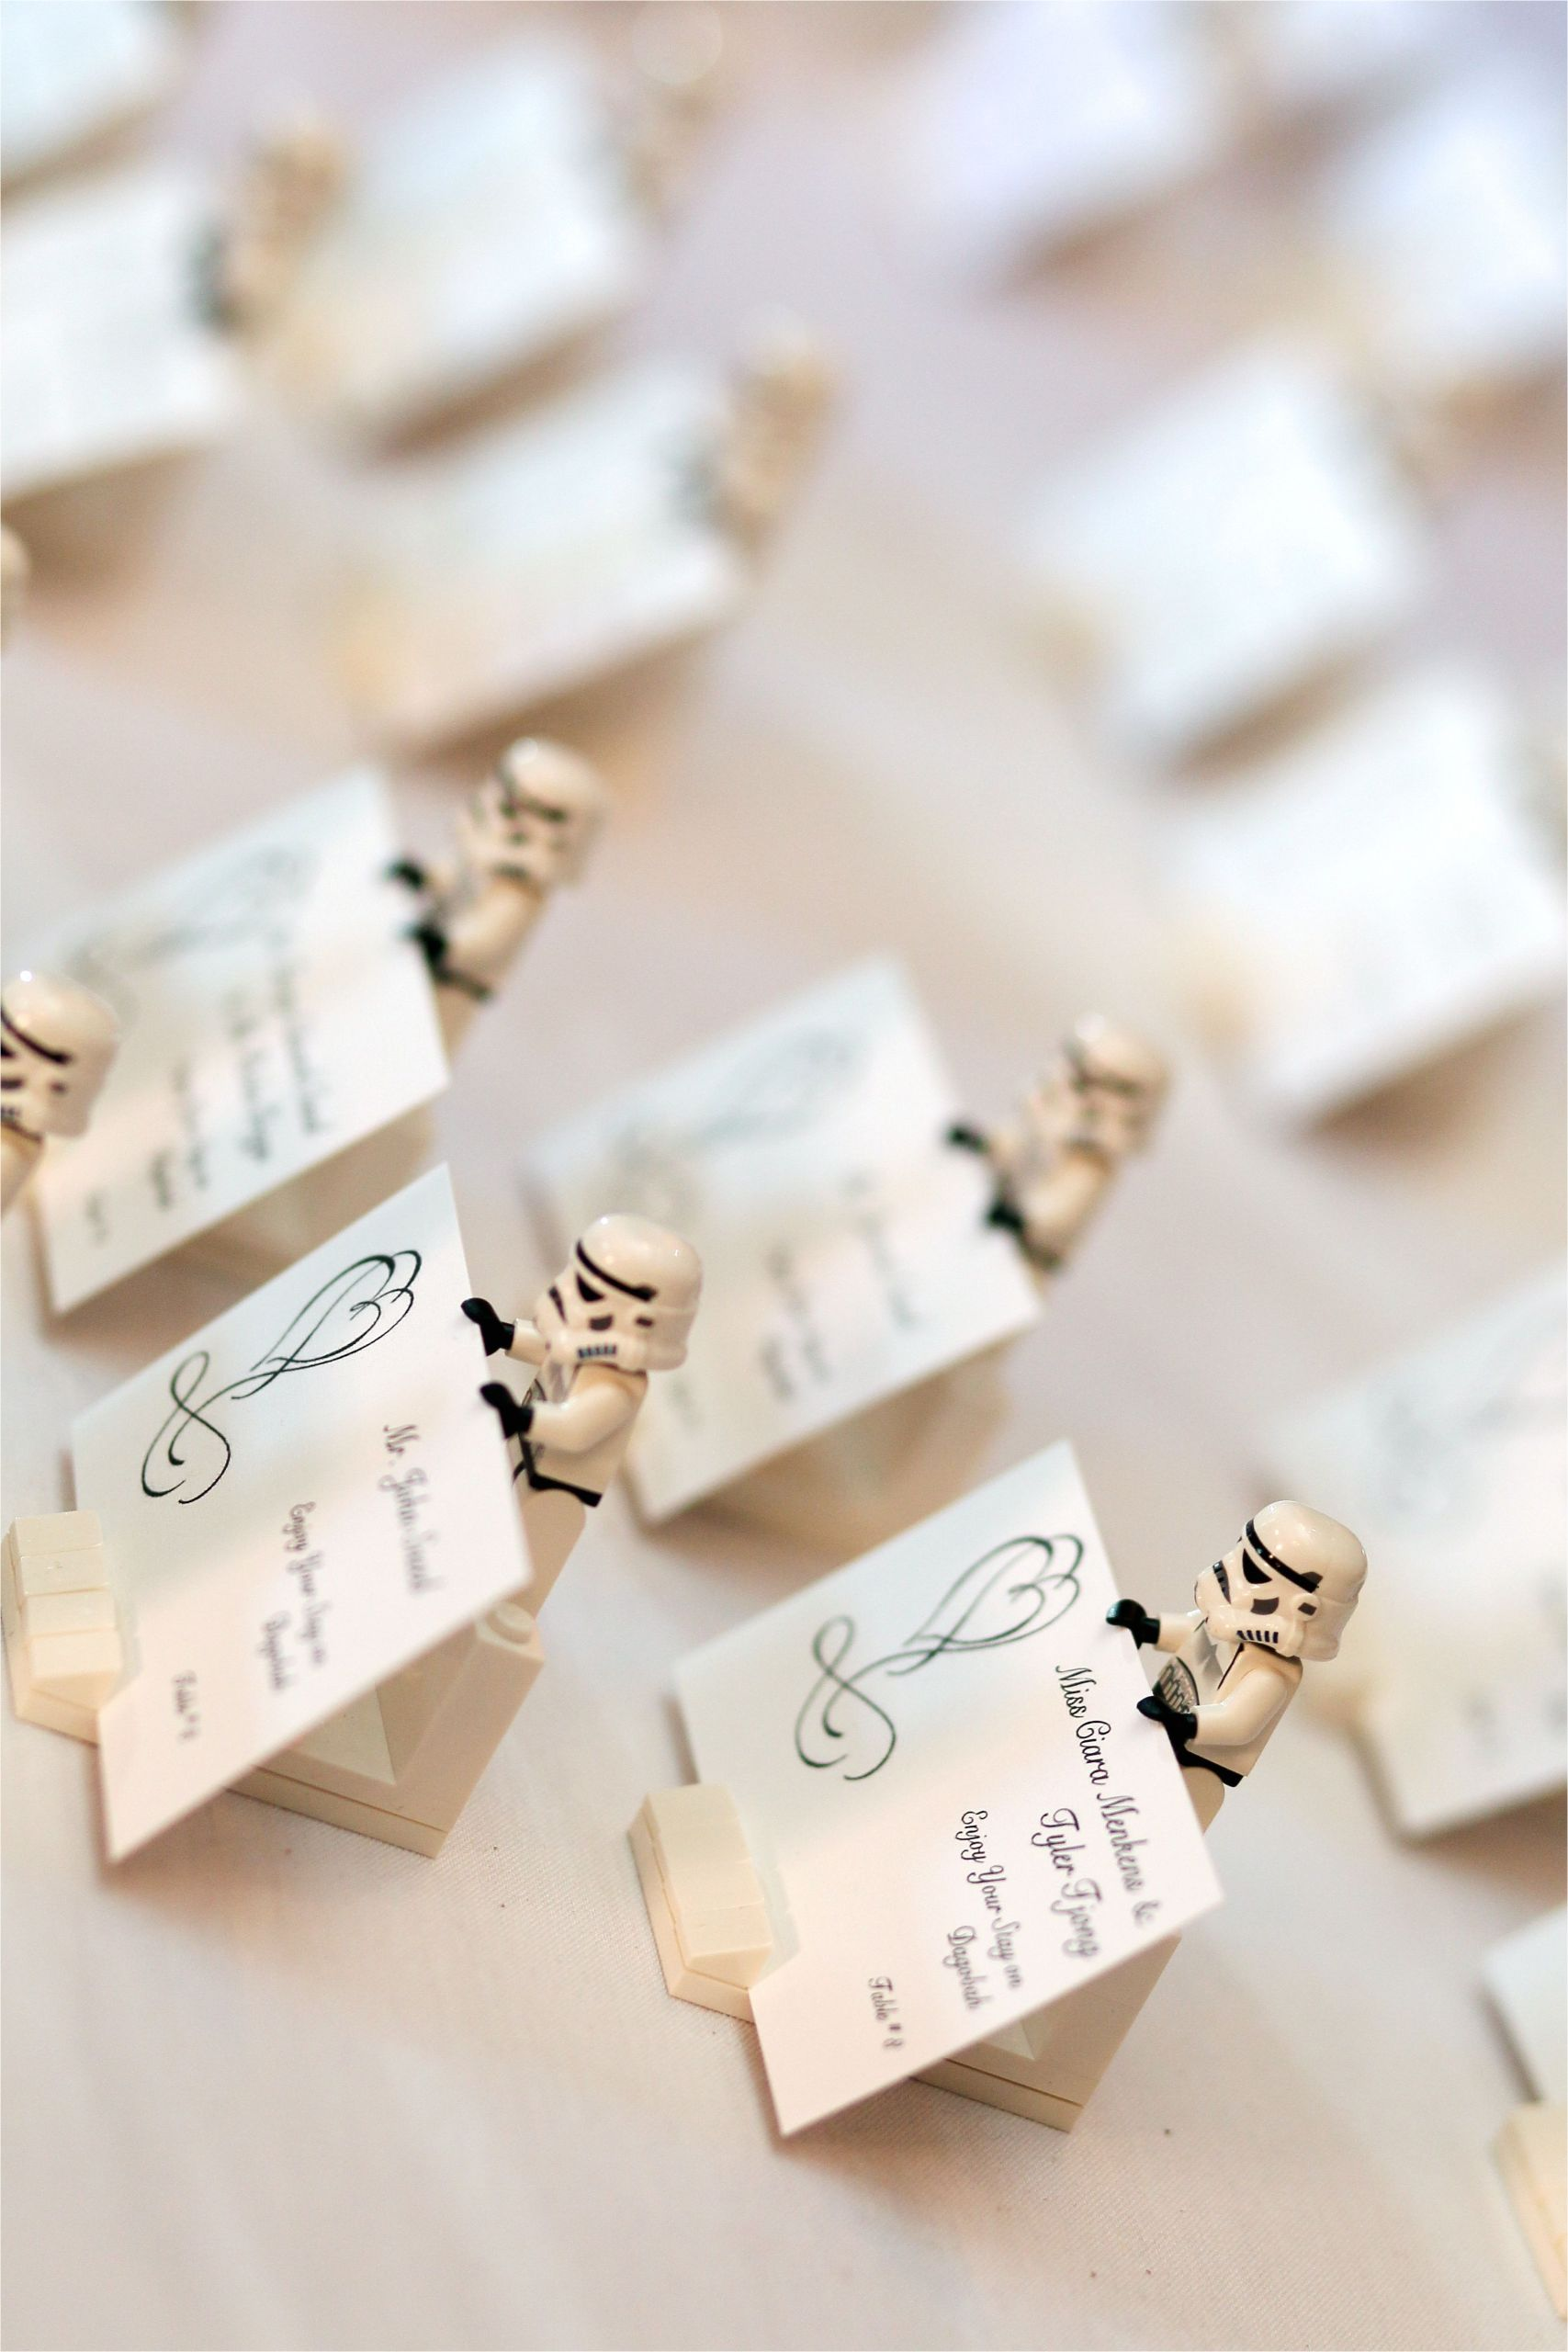 Diy Card Holder for Wedding Our Place Card Holders Made From Lego Stormtroopers